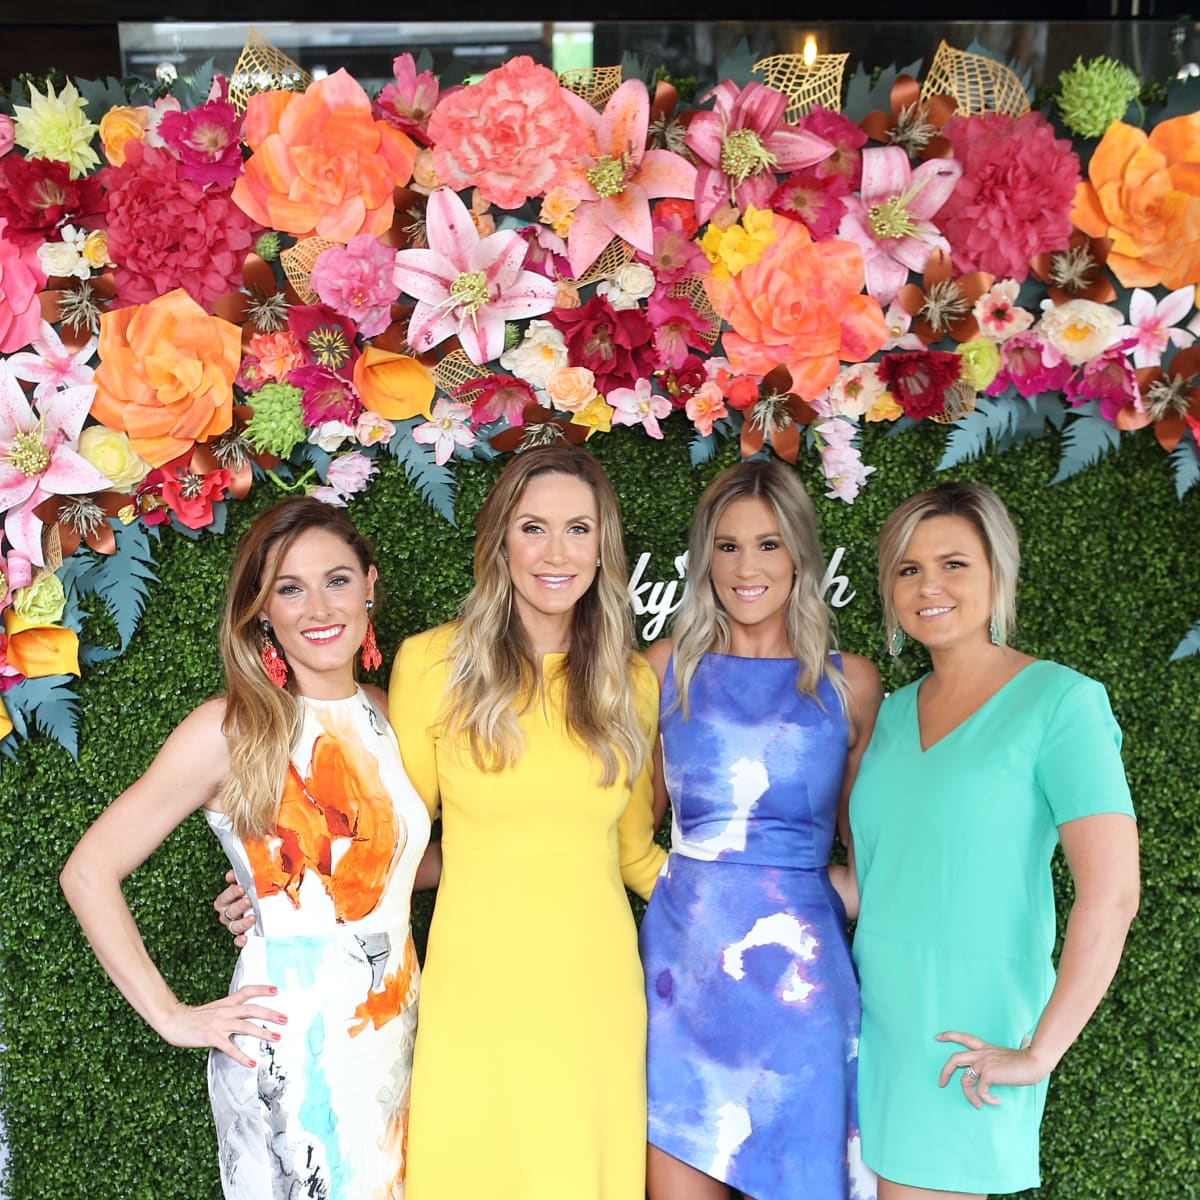 Helen Winchell, Lara Trump, Ashley Butler, Jordan Simpson at Sky High Brunch